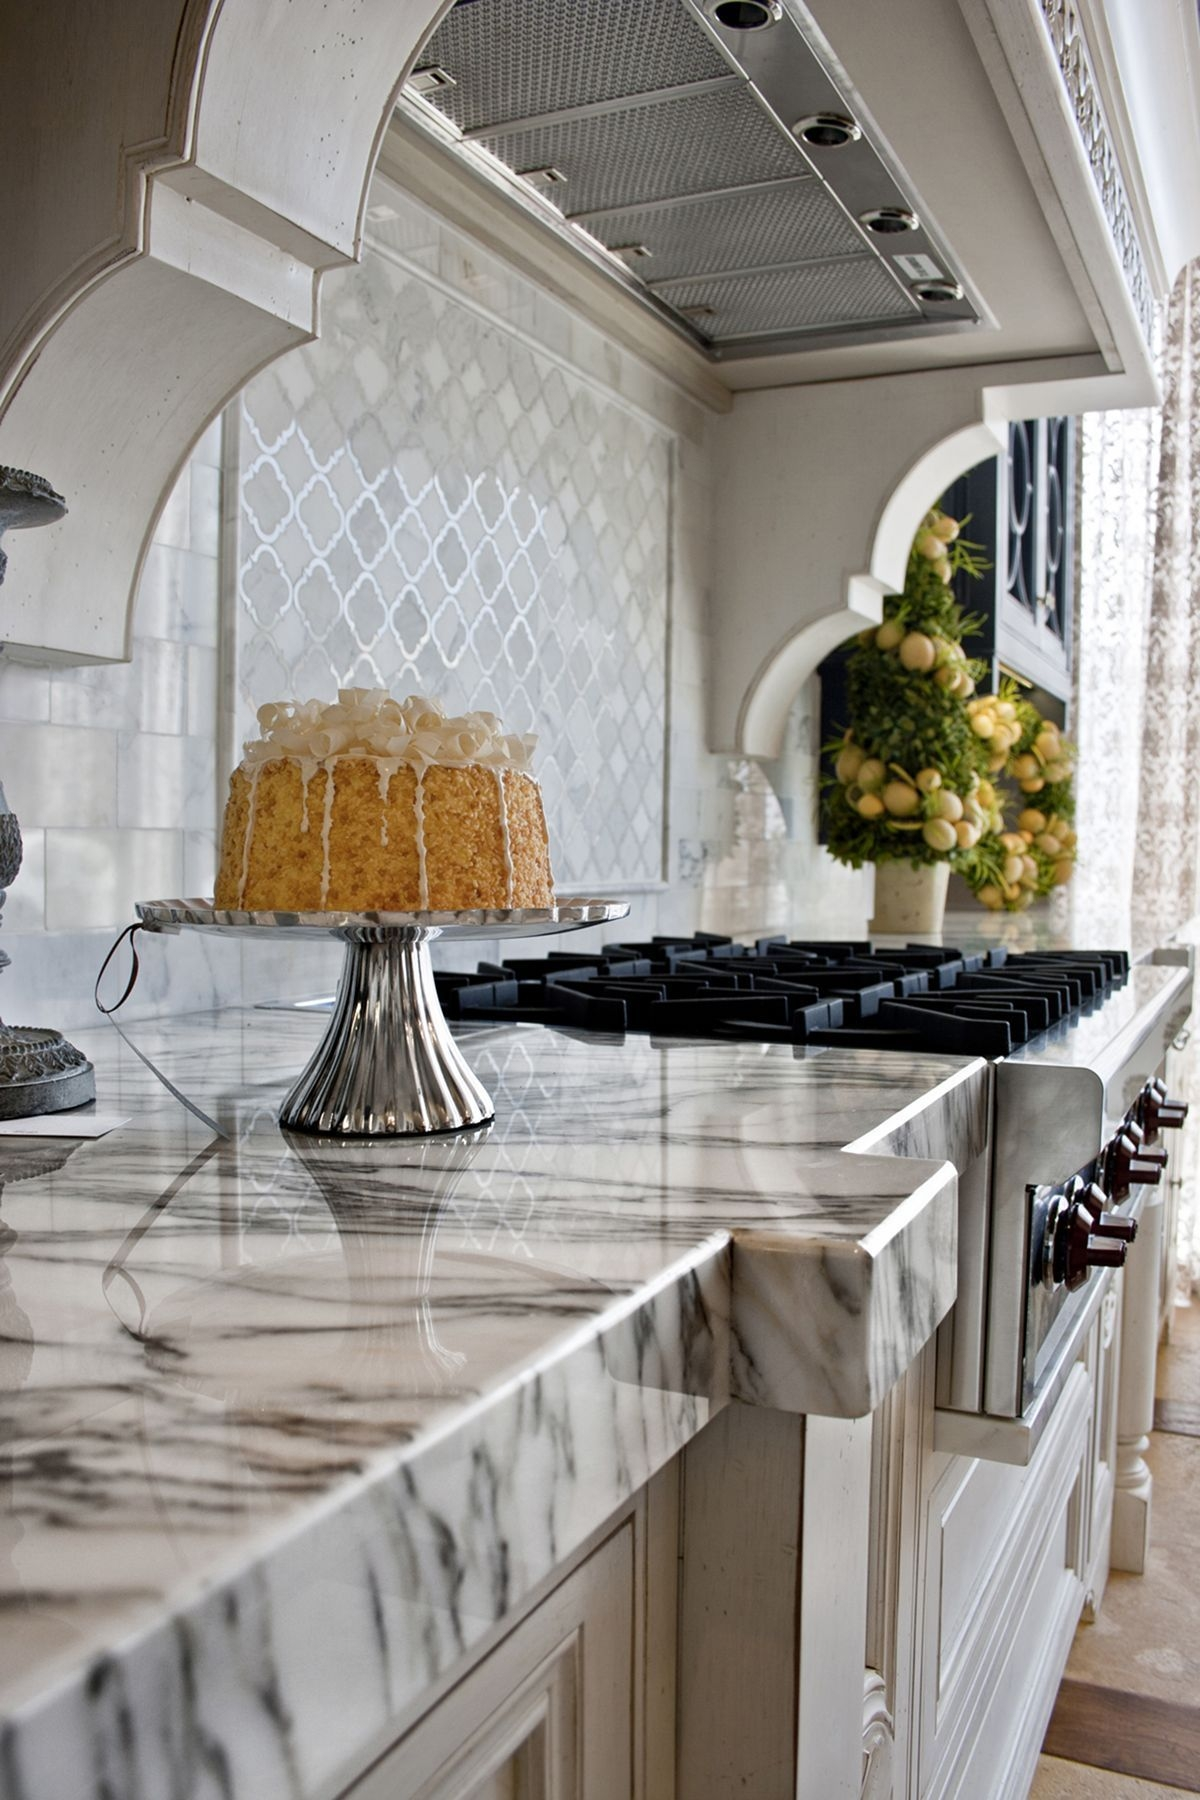 Admiring Granite Kitchen Countertops Ideas That You Shouldnt Miss43